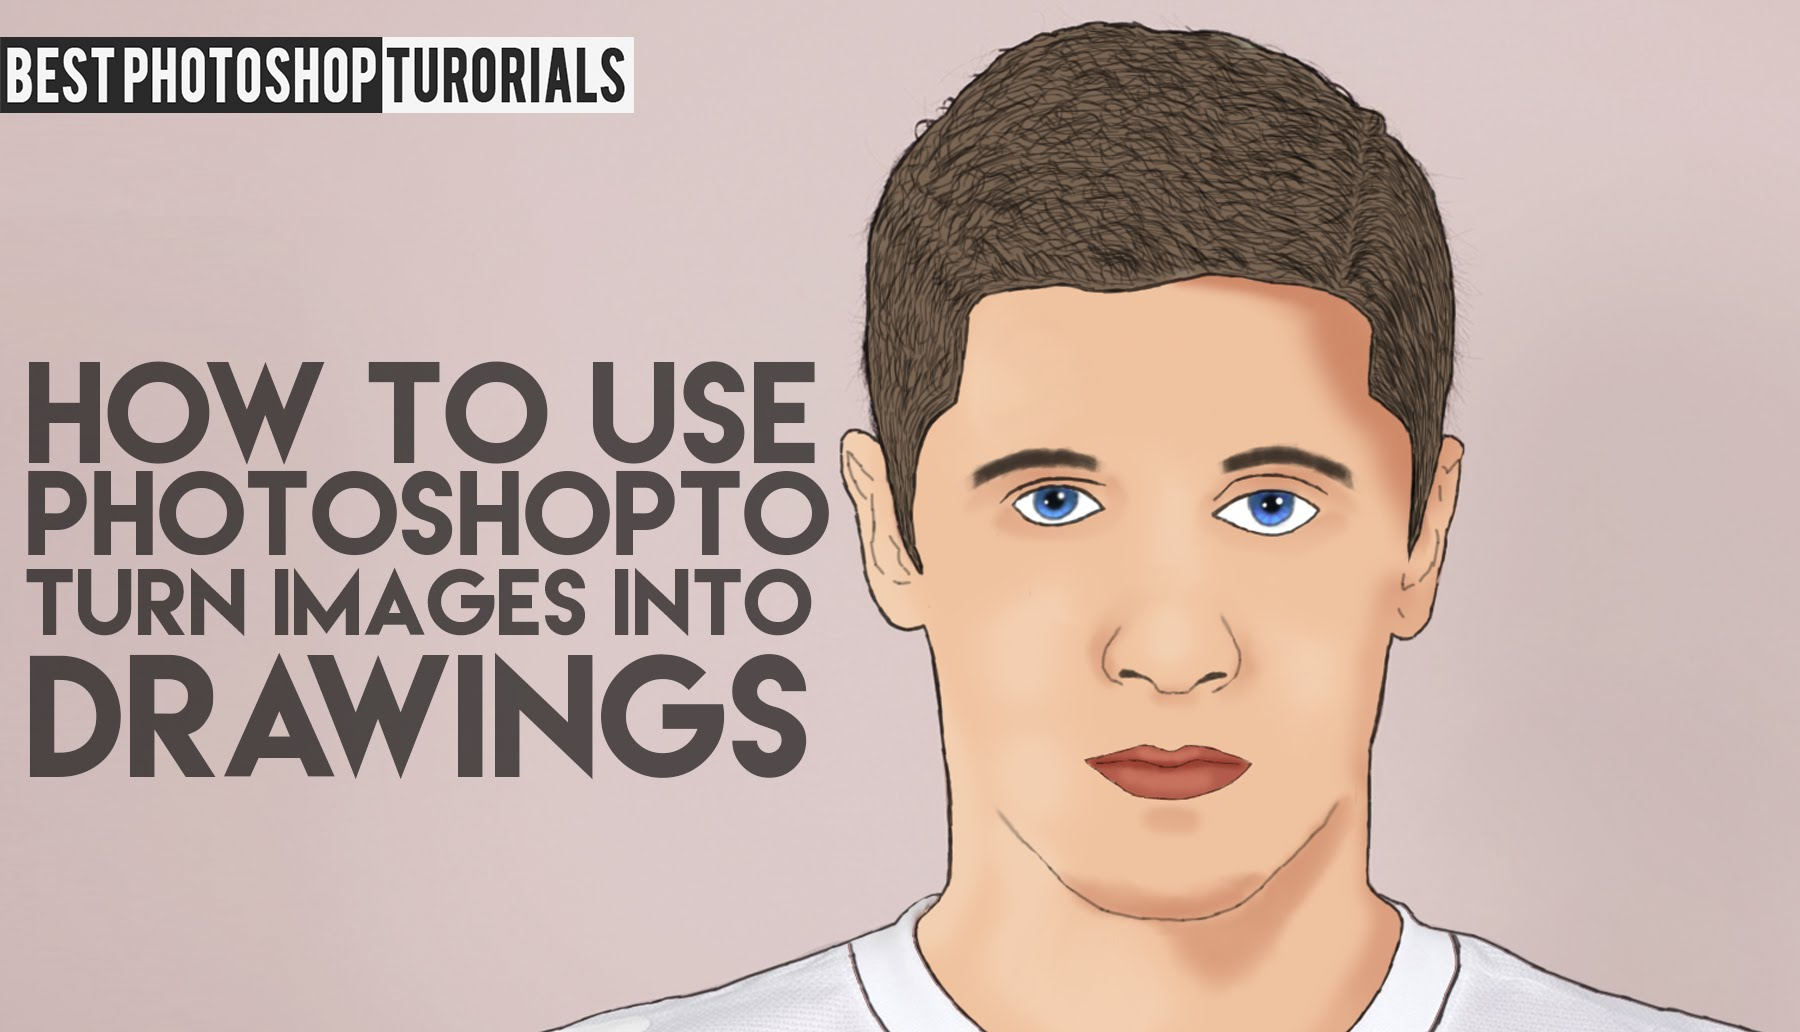 1800x1032 Photoshop Tutorial How To Use Photoshop To Turn Images Into